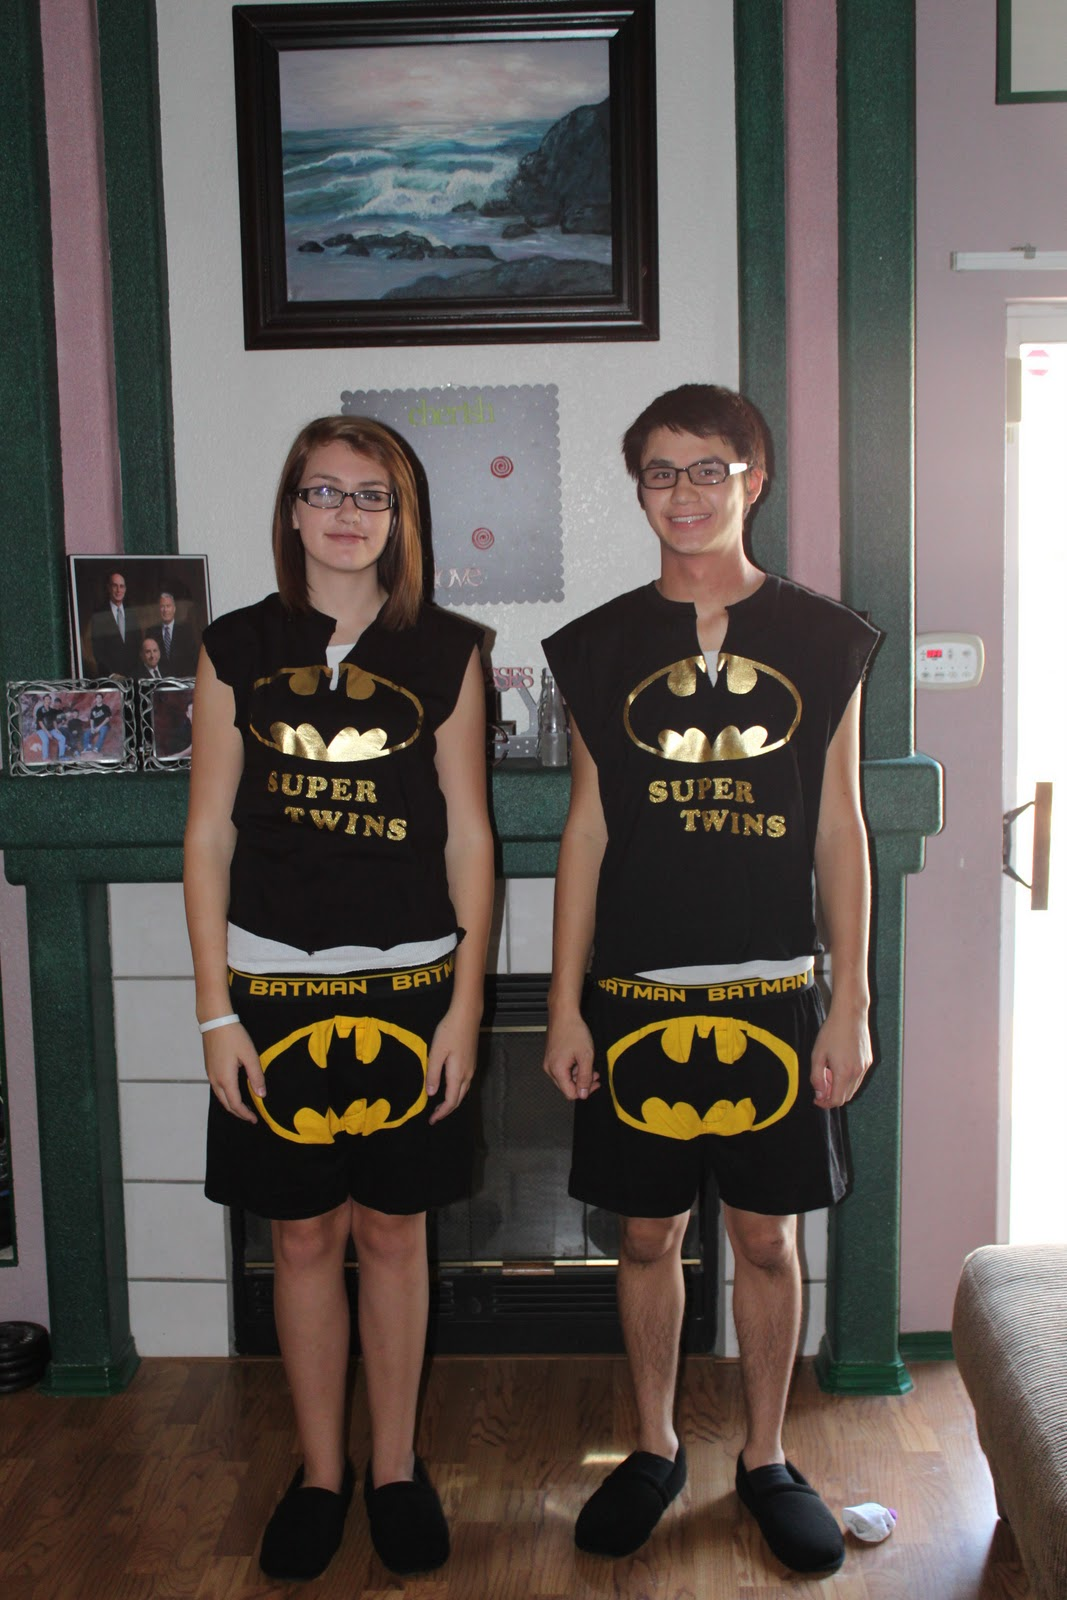 Ideas For Twin Day For Girls At School Download image Twin Da. Ideas For Twin Day For Girls At School